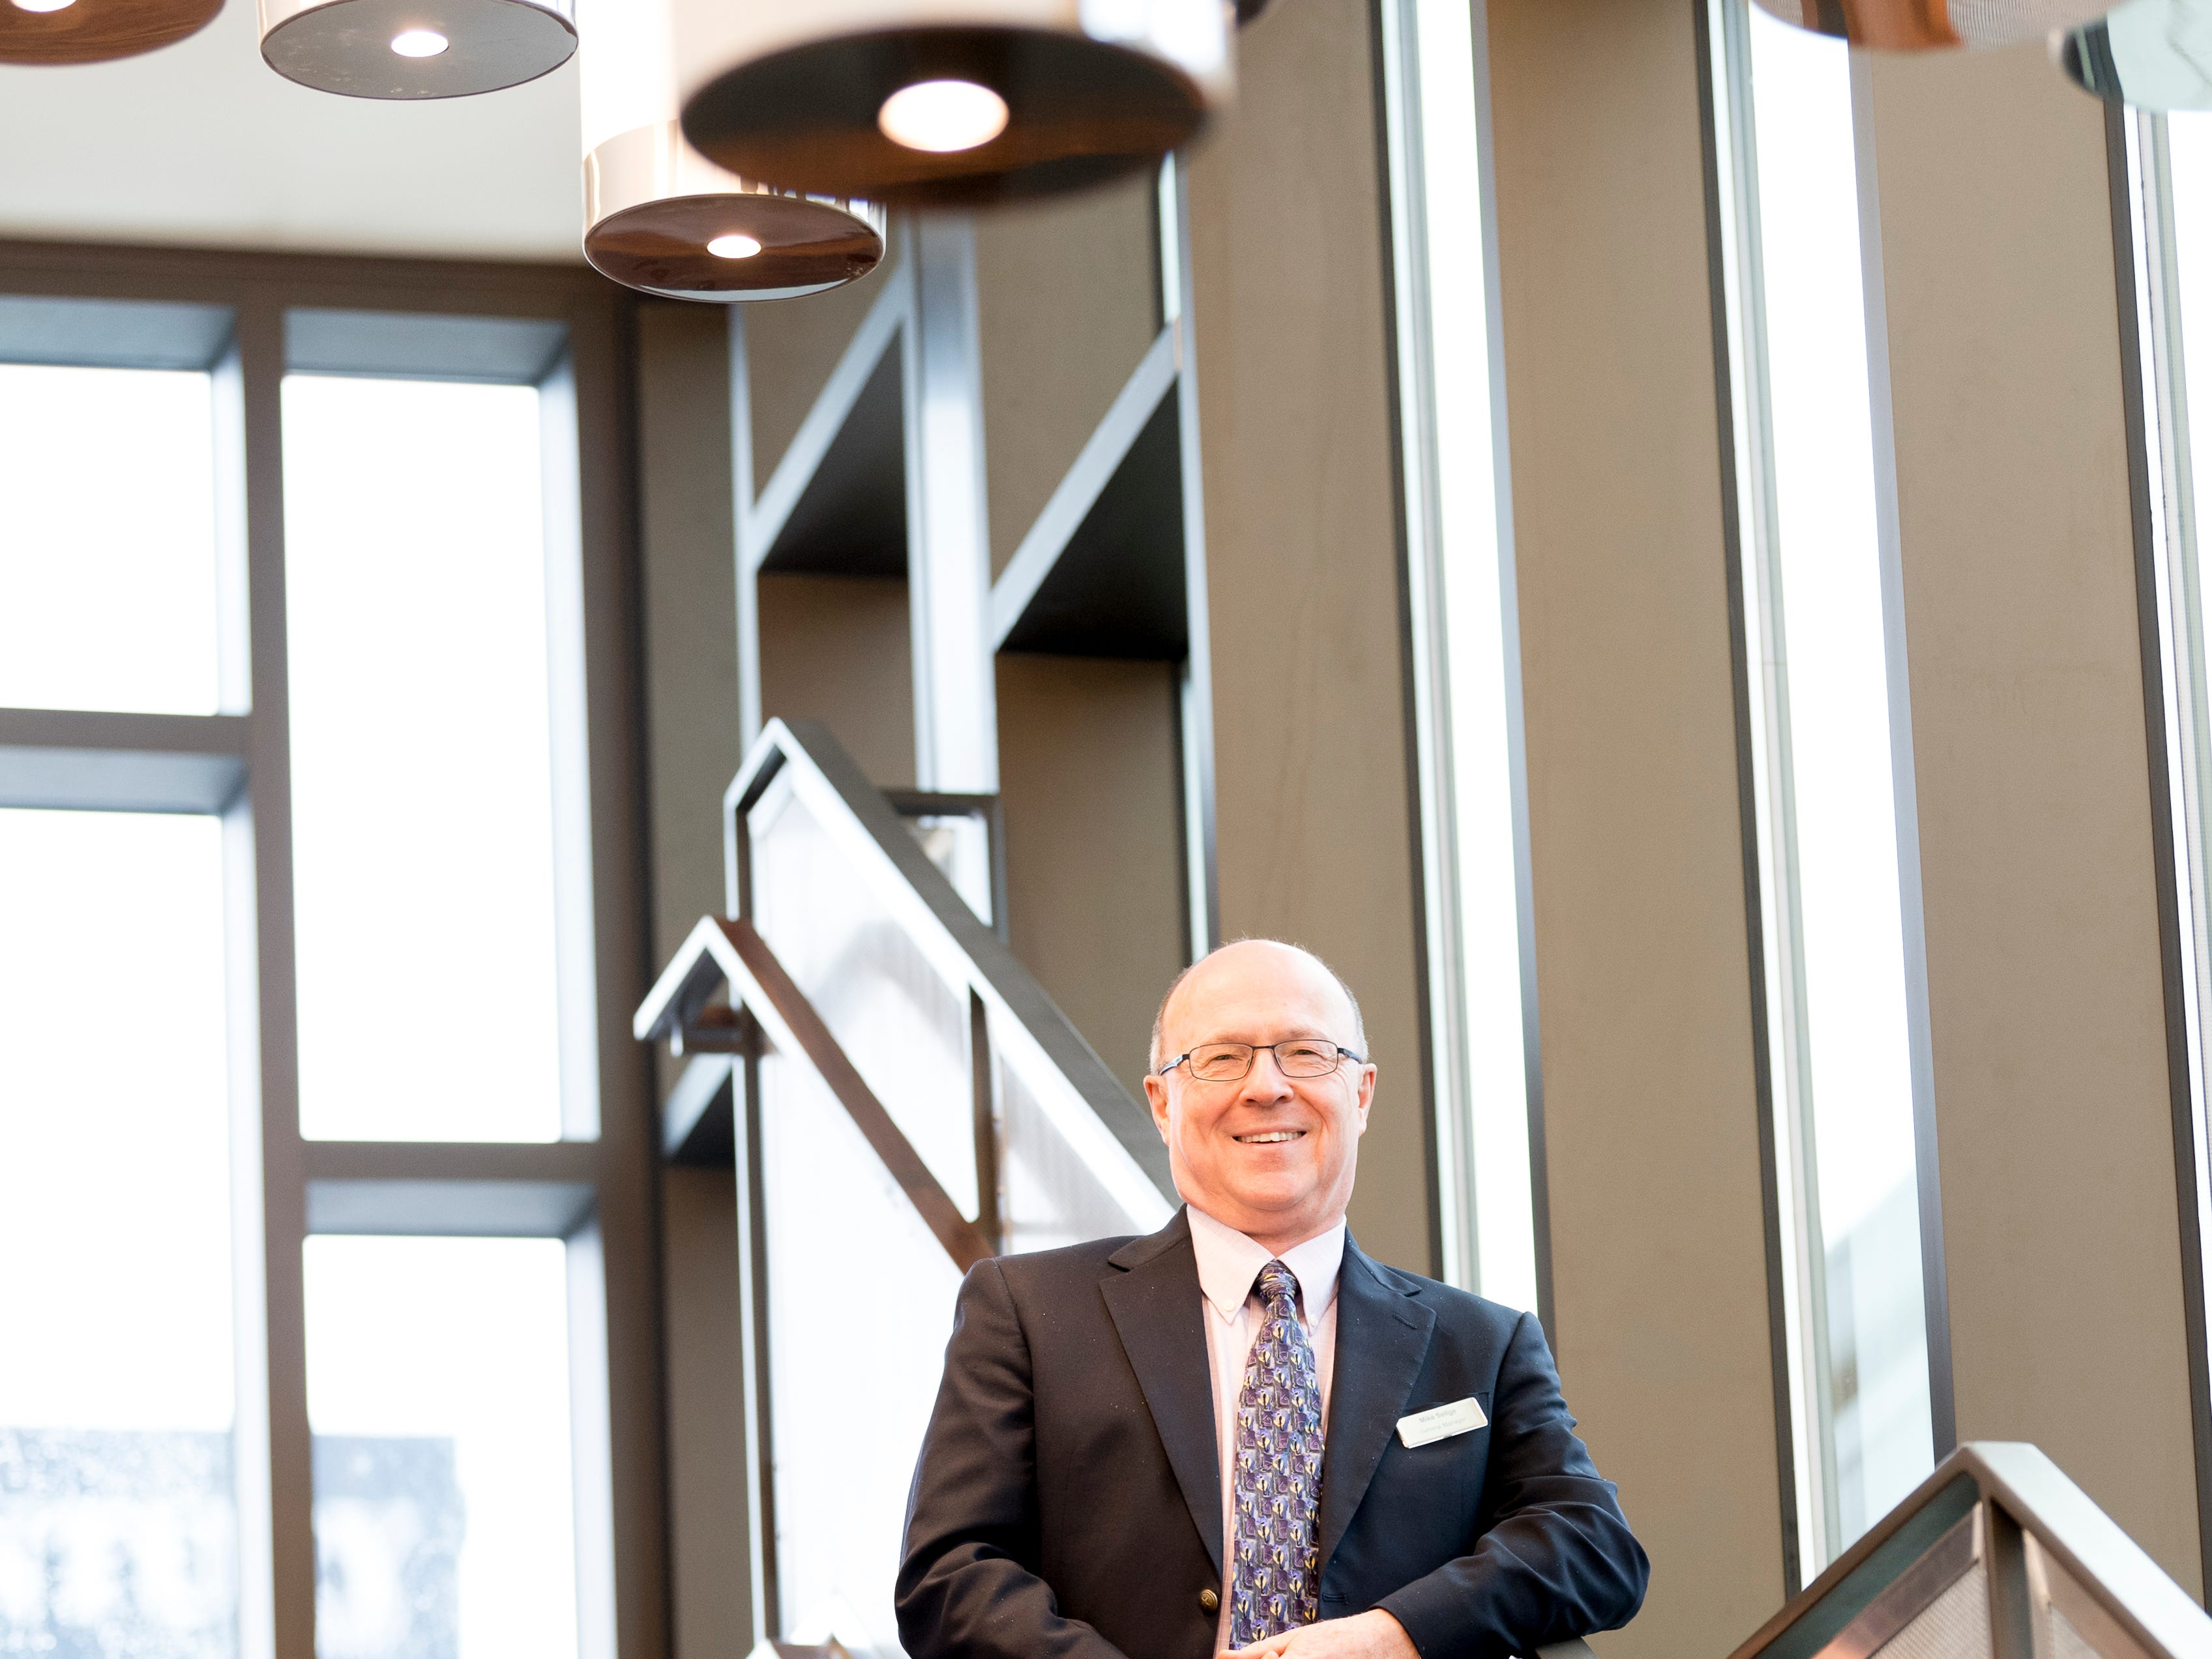 General Manager Mike Sellge poses for a photo March 25, 2019, on the grand staircase at the new Courtyard and Residence Inn by Marriott at 210 Church Ave. in Knoxville. The hotel is the first of its kind in Knoxville to offer two different tiers of hospitality within the same building.